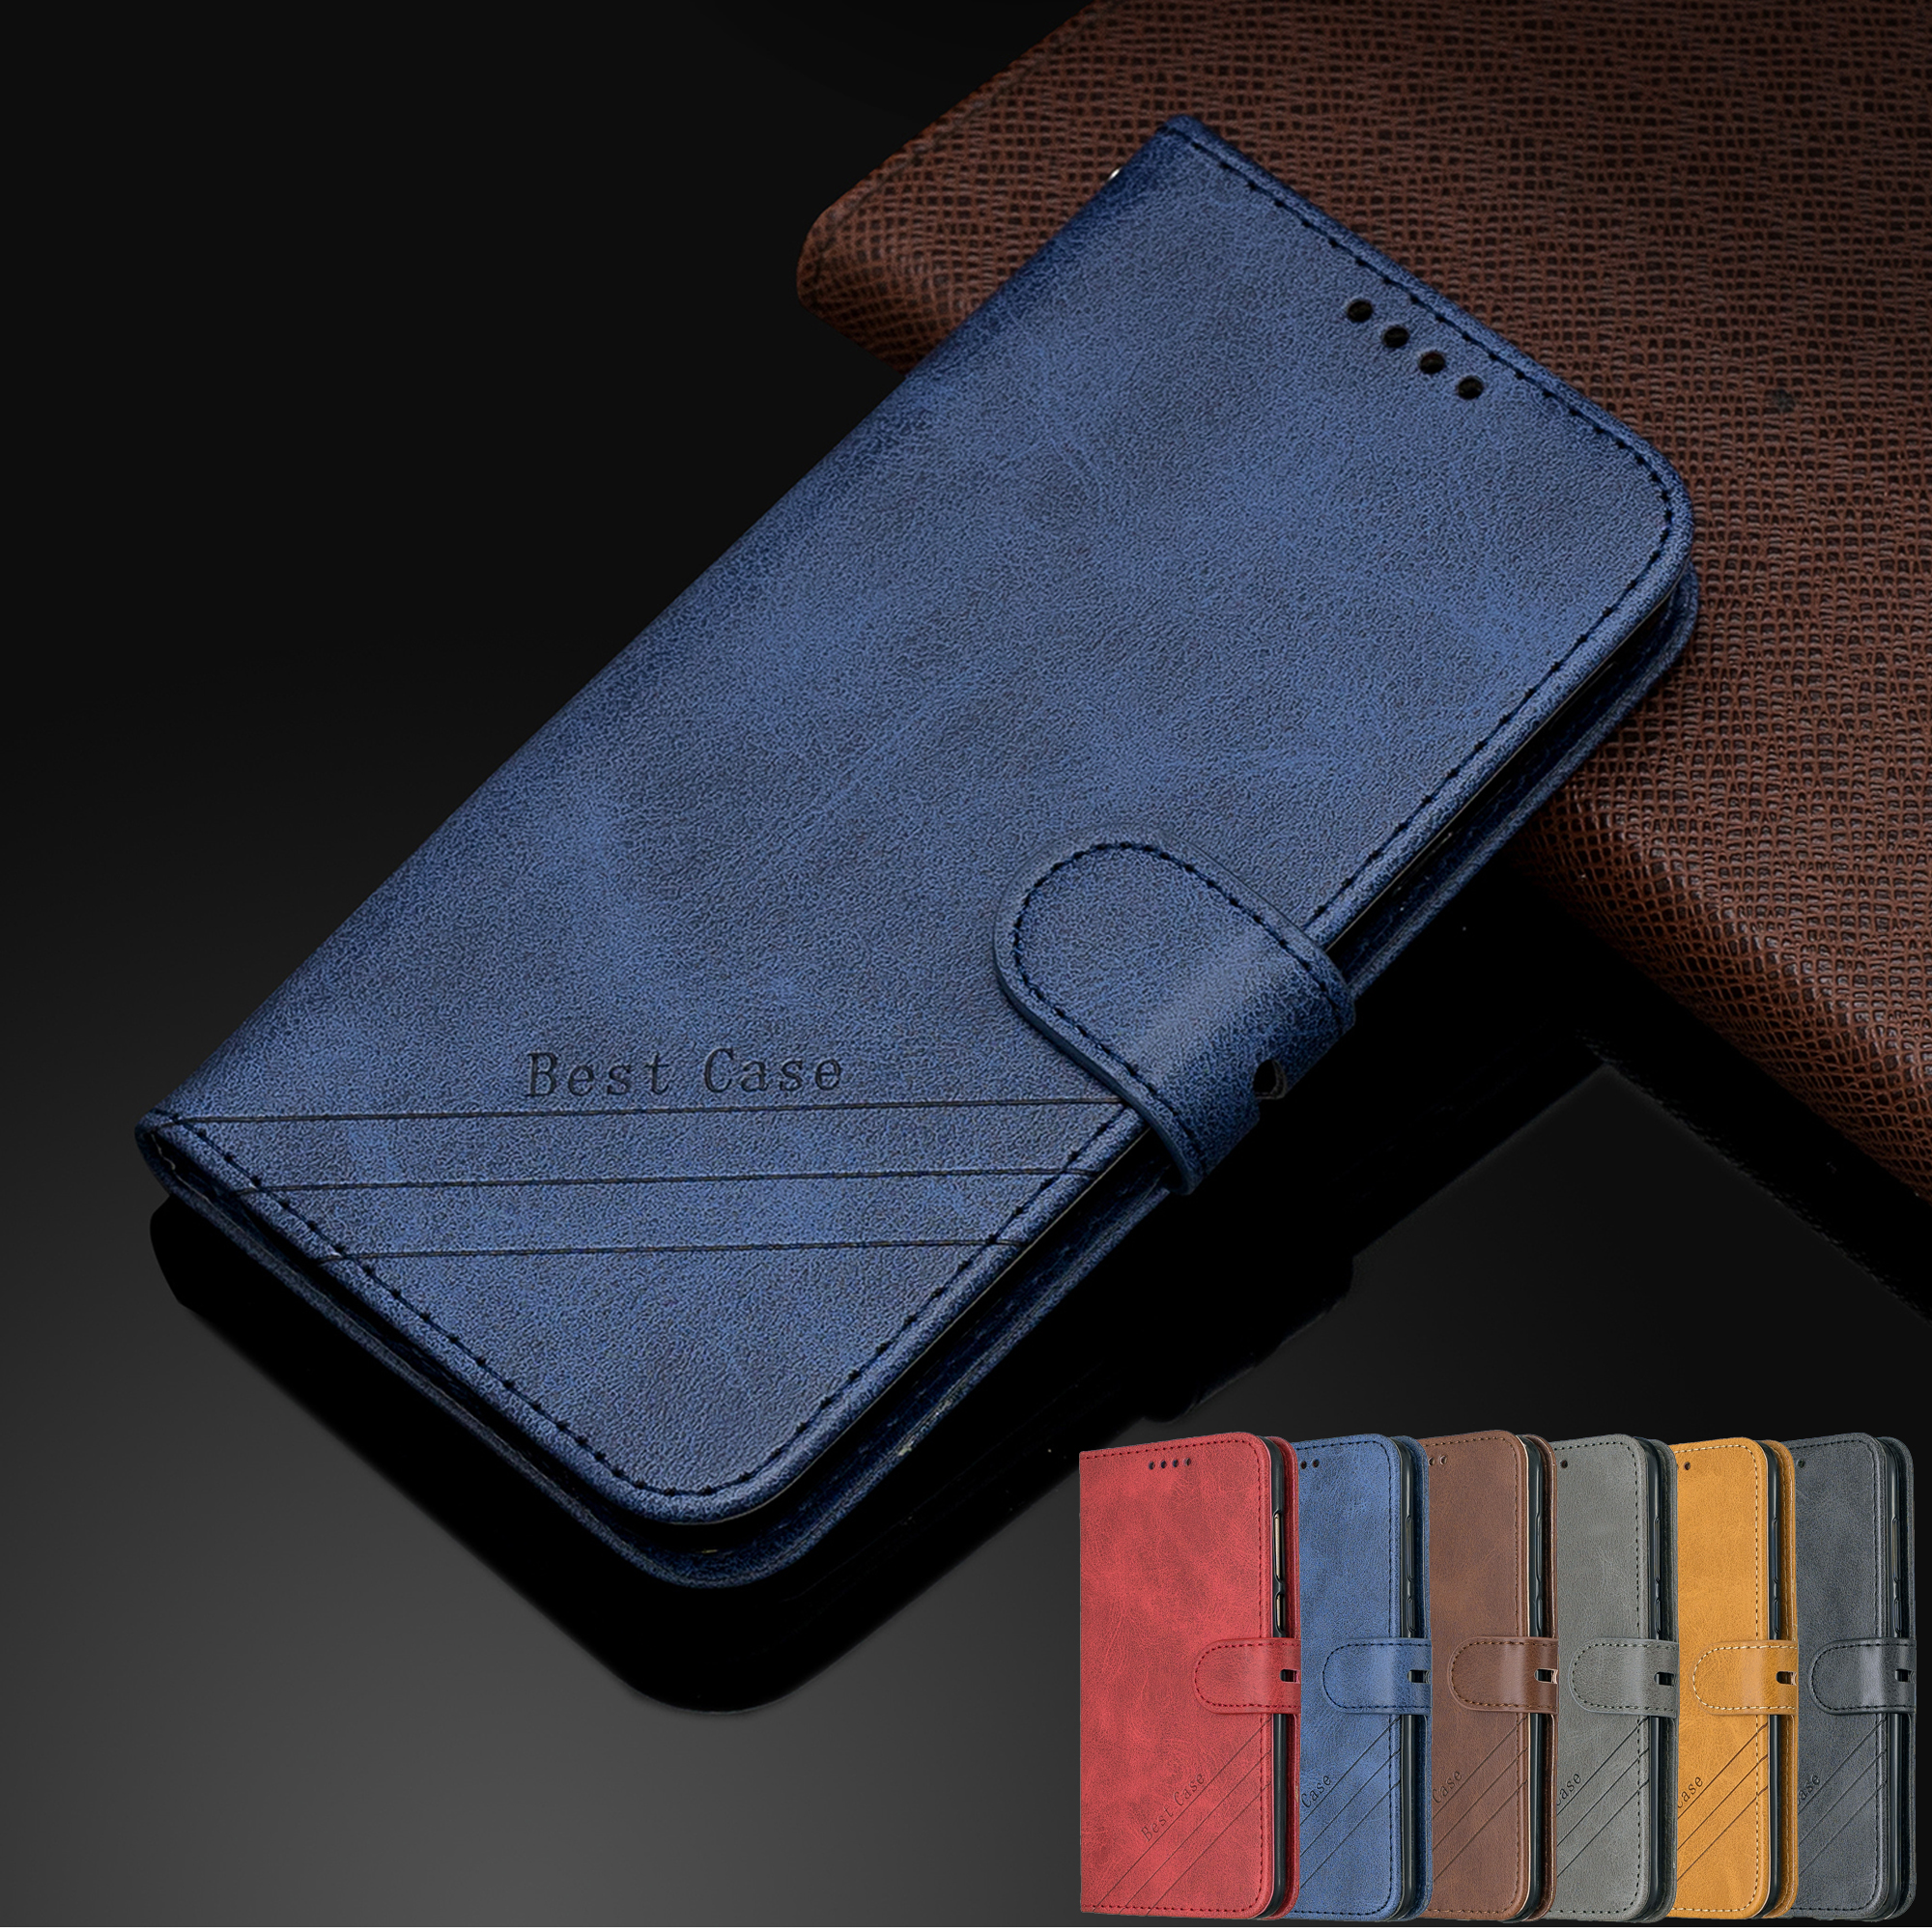 Coque For <font><b>Huawei</b></font> Y5 Lite 2018 <font><b>DRA</b></font>-LX5 Case Leather Flip Cover <font><b>Huawei</b></font> Y5 2018 <font><b>DRA</b></font> LX2 <font><b>L21</b></font> Protect Mobile Phone Case Y5 Prime 2018 image